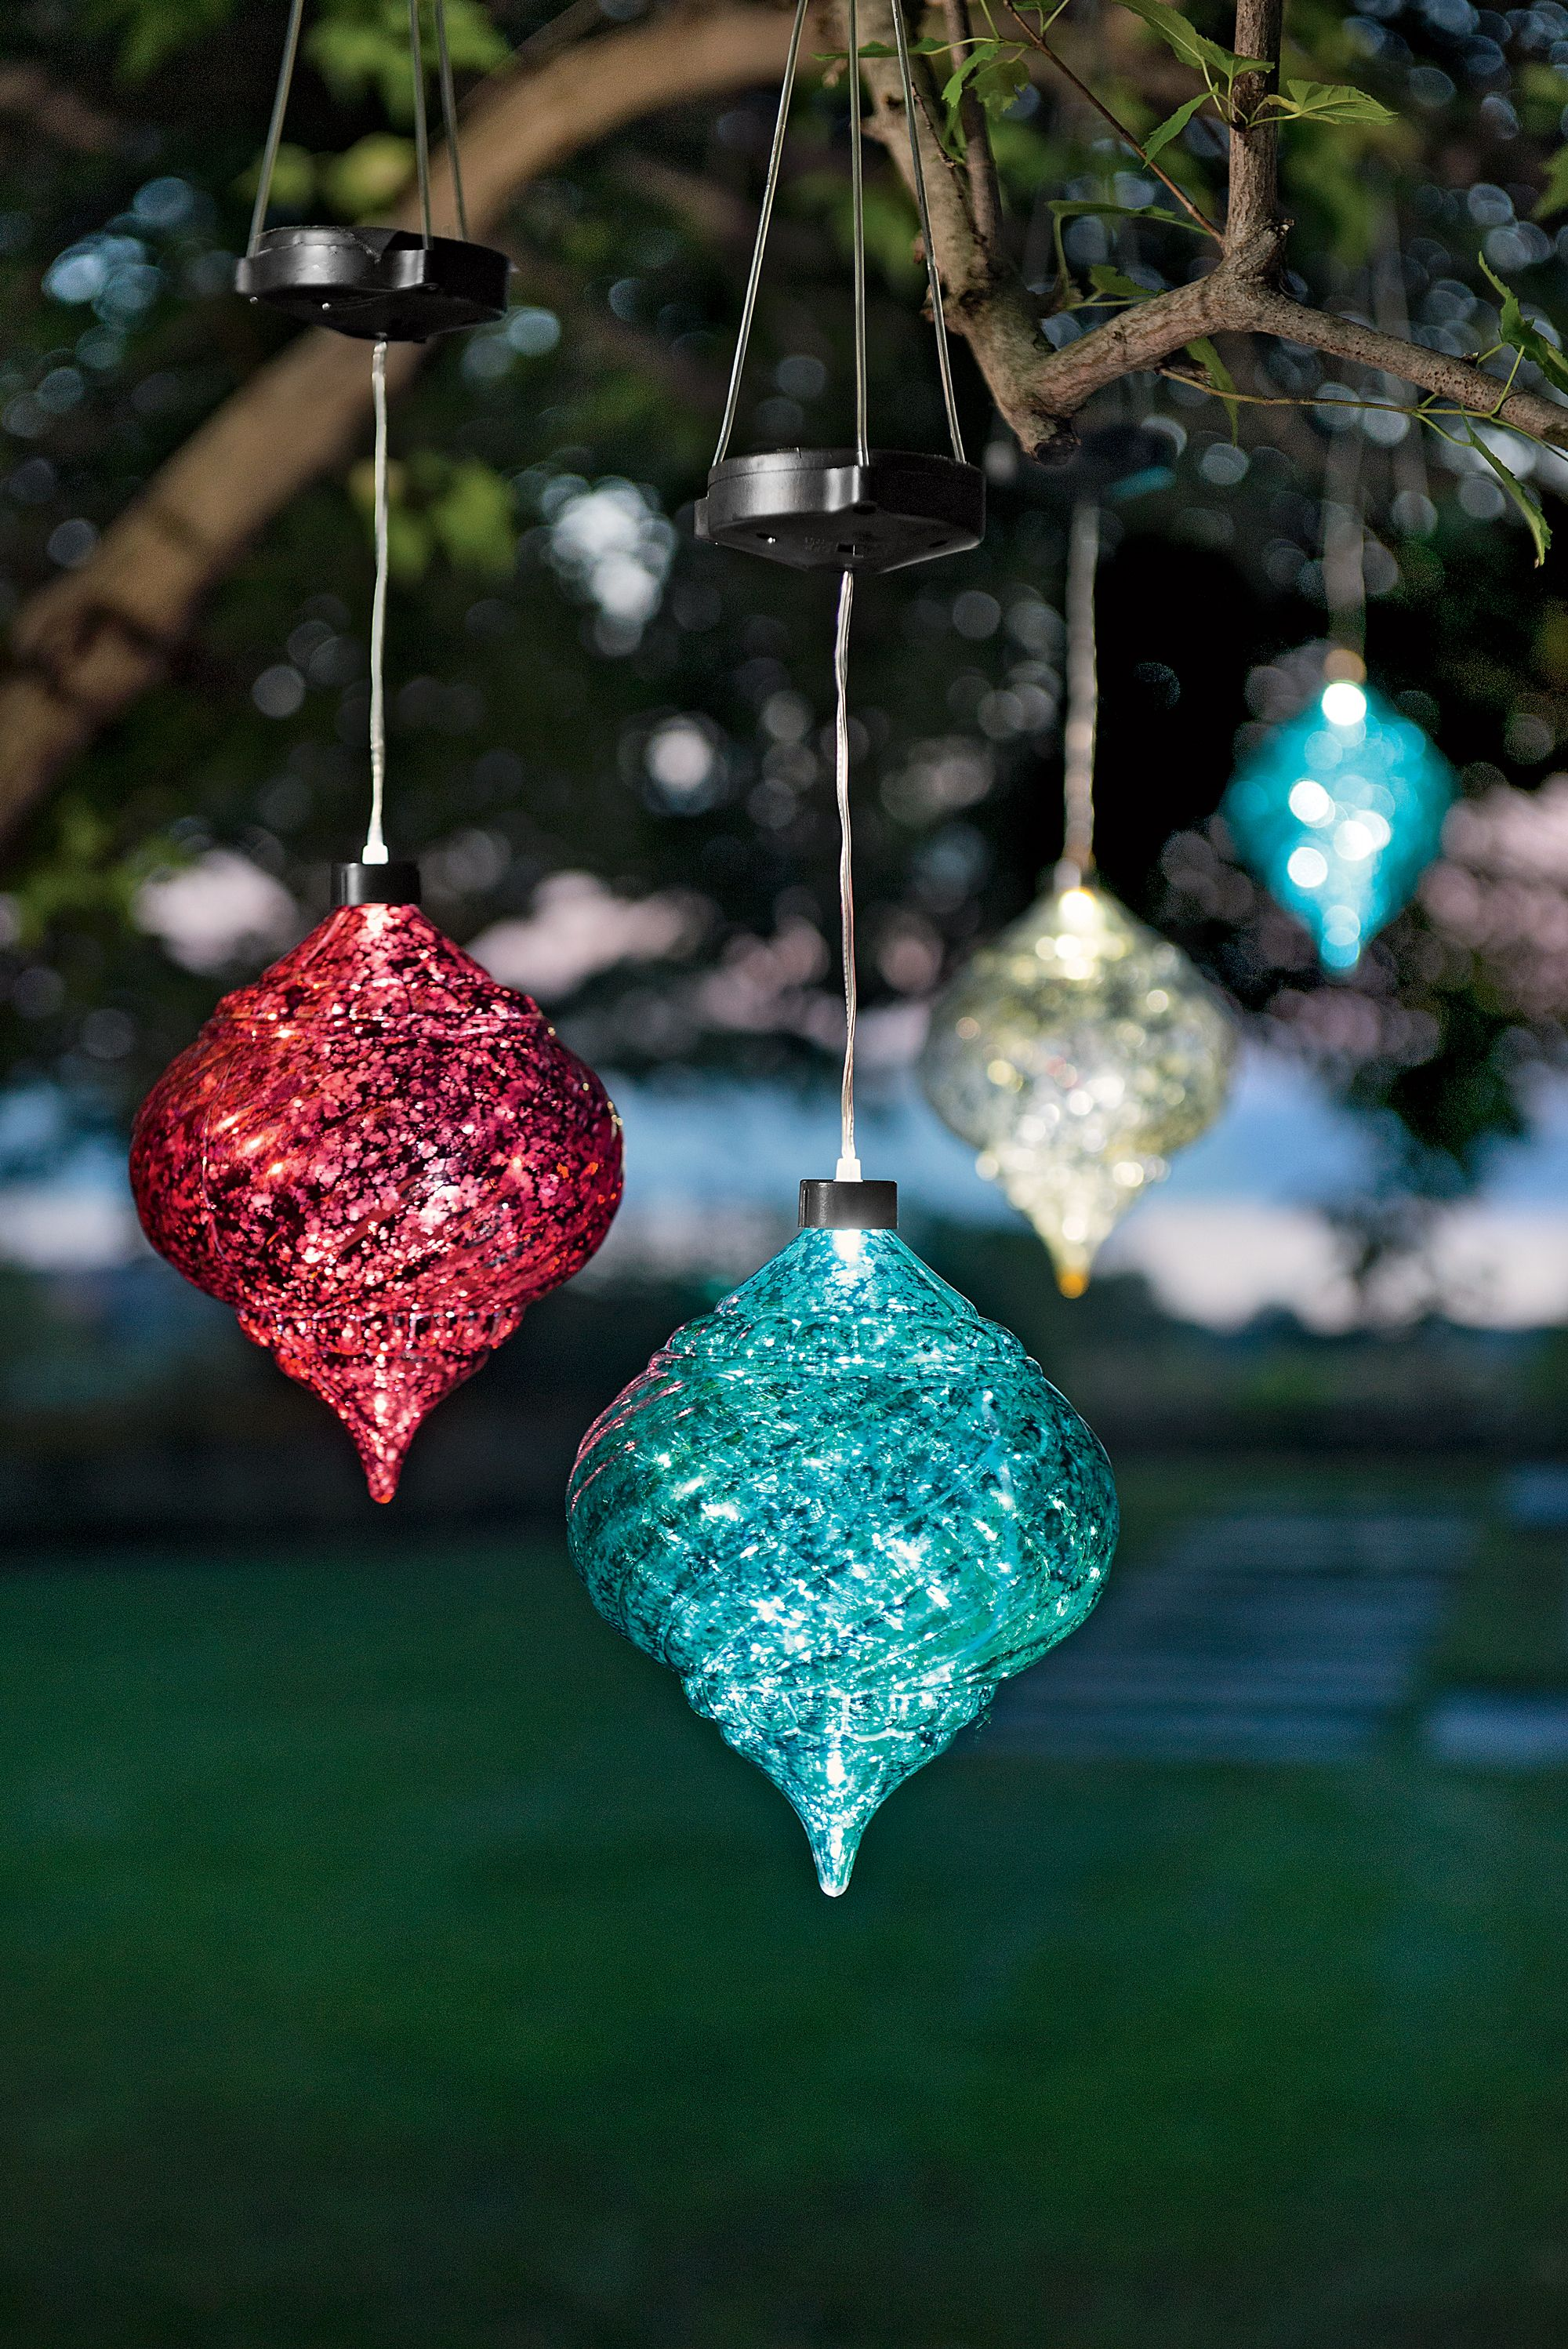 Large Outdoor Christmas Ornaments - Hanging Onion Solar Ornament ...